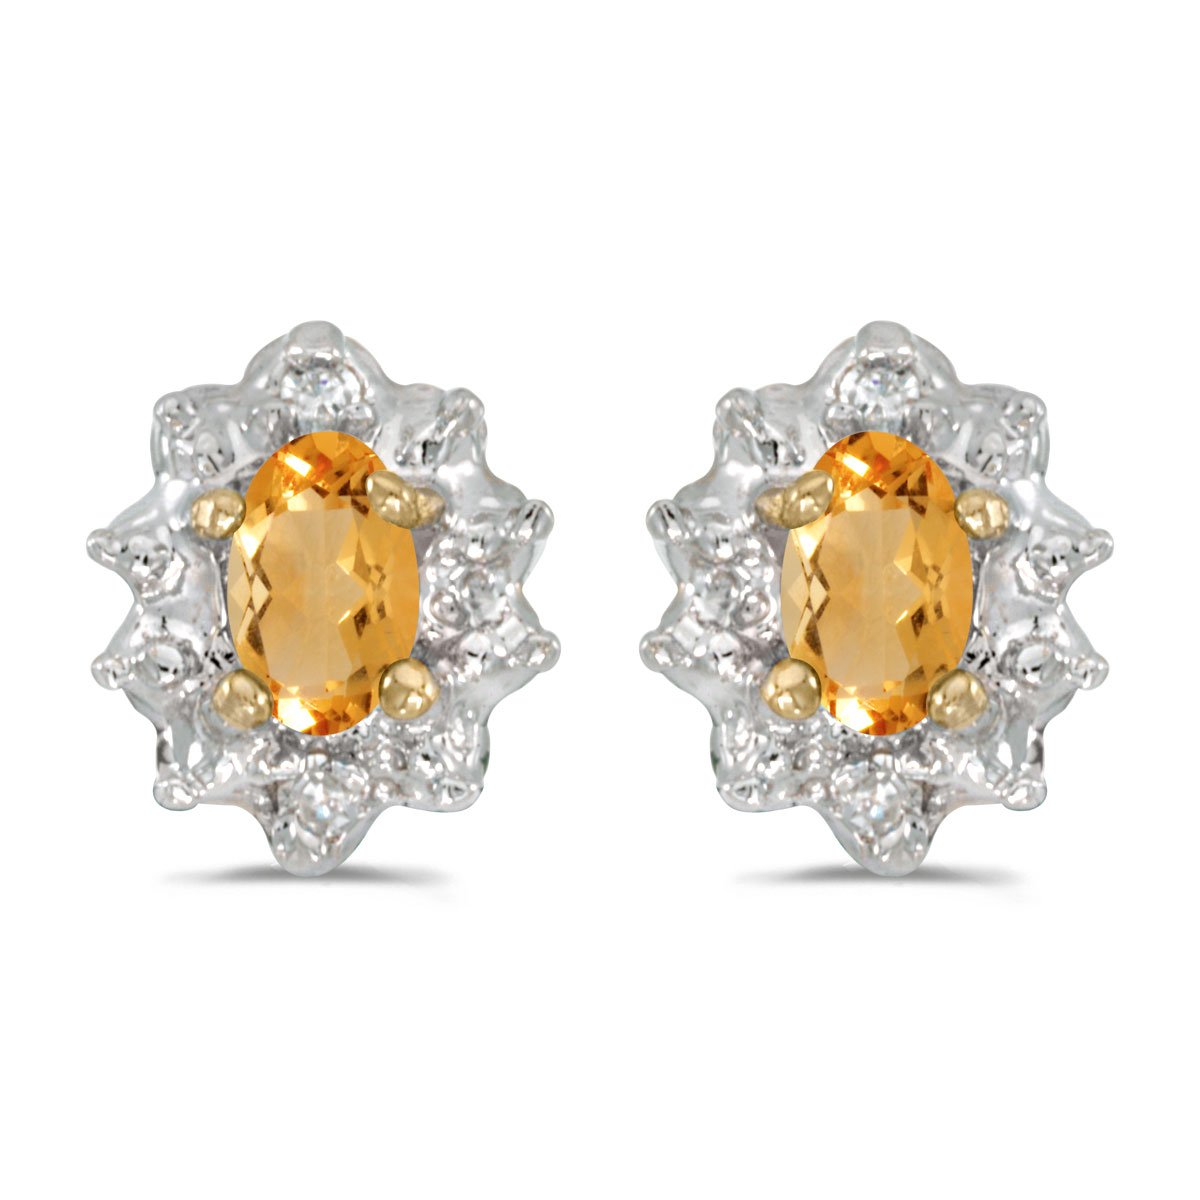 Jewels By Lux 10k Yellow Gold Studs Oval Gemstone And Diamond Earrings